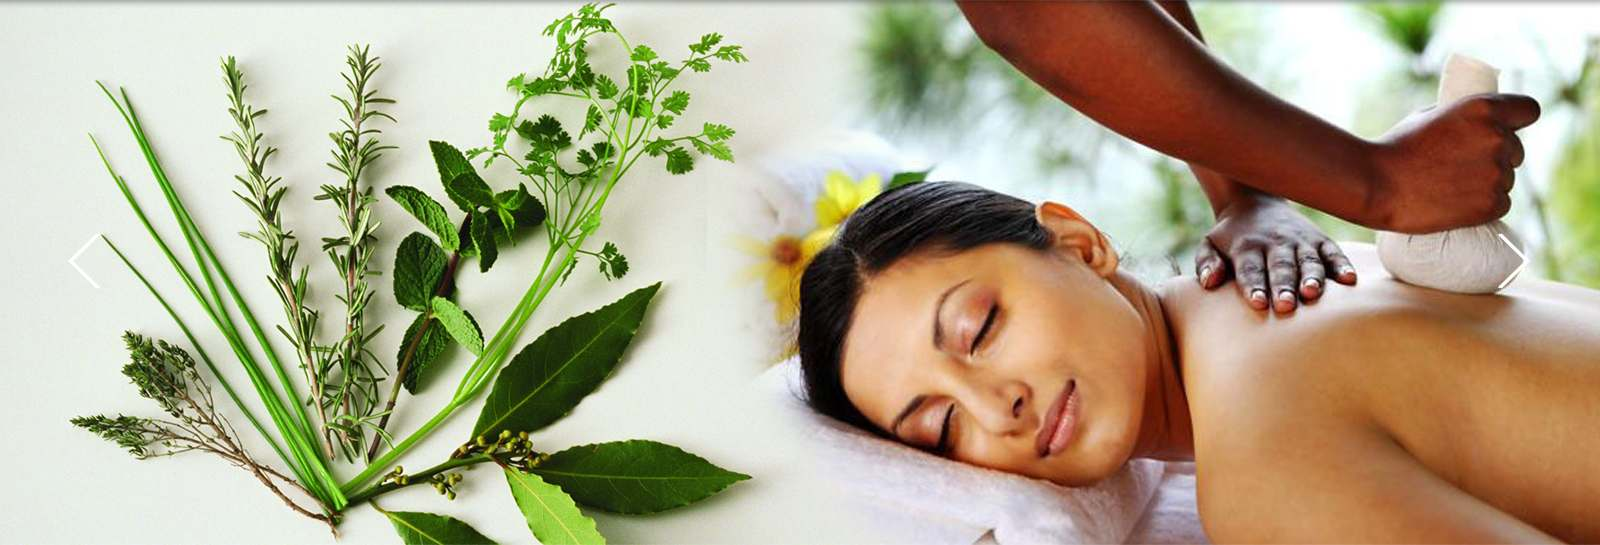 ayurvedic wellness packages in kochi, ernakulam